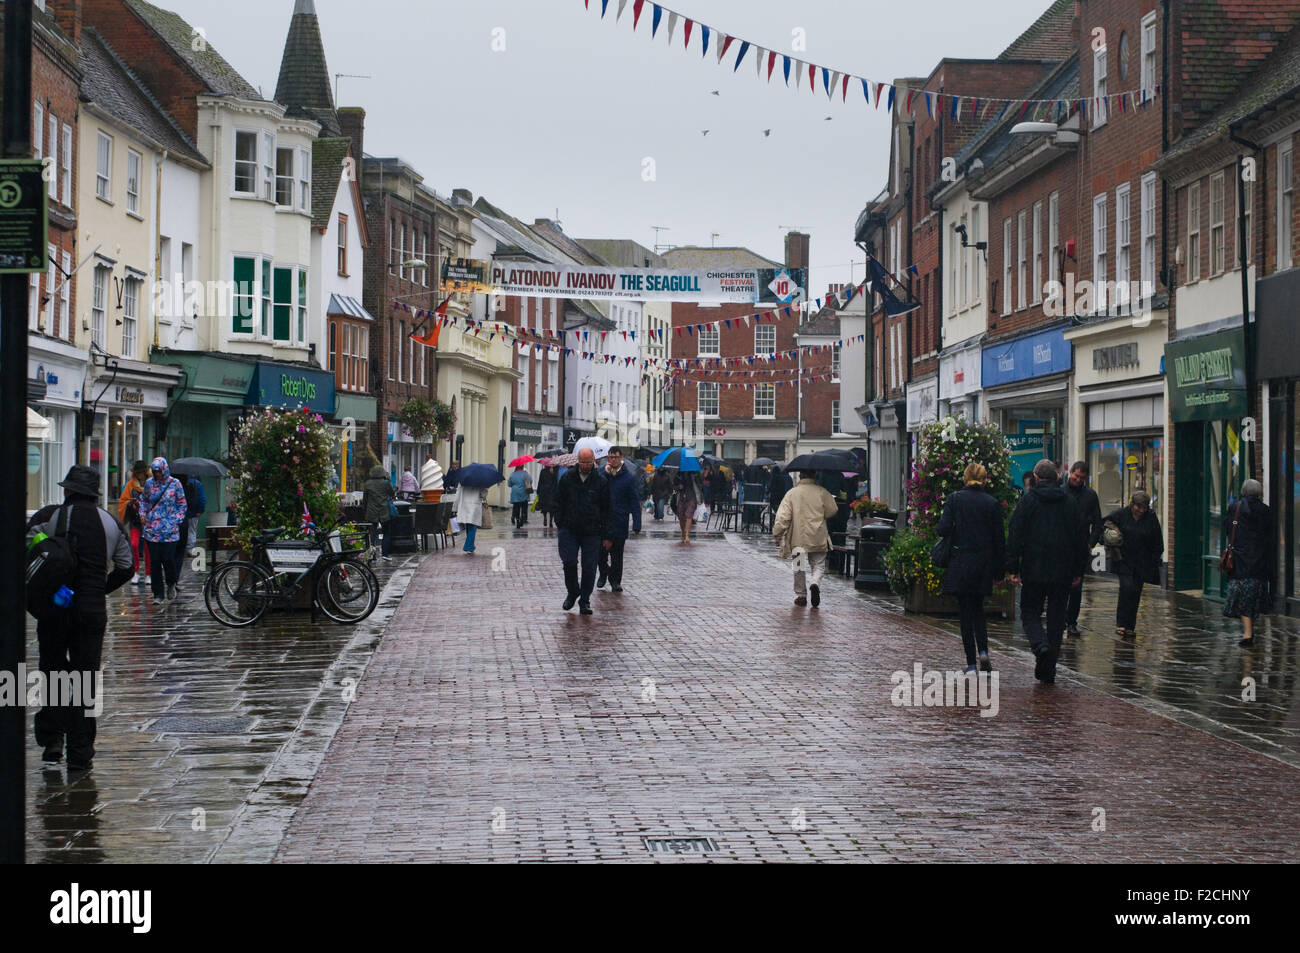 North Street, Chichester, West Sussex, England. People